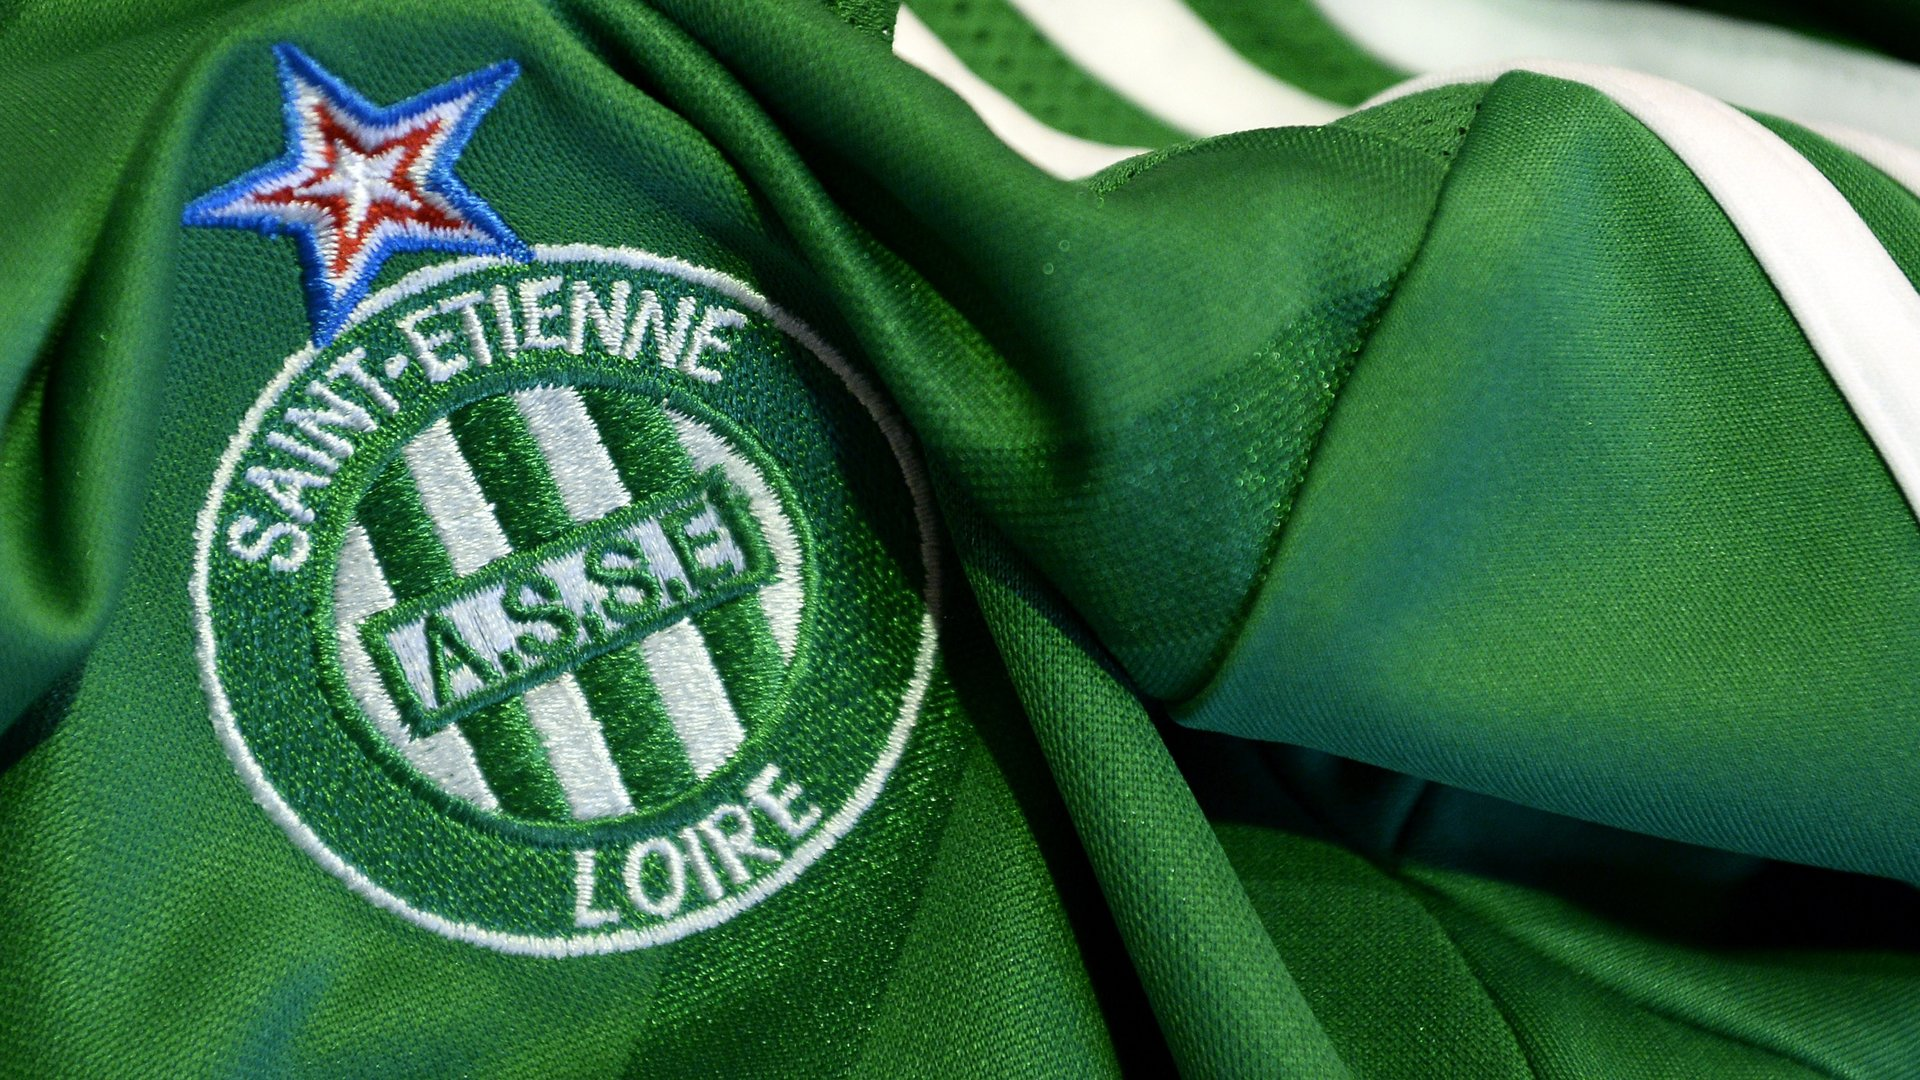 Fabrice Grange quitte l'AS Saint-Étienne — ASSE Mercato